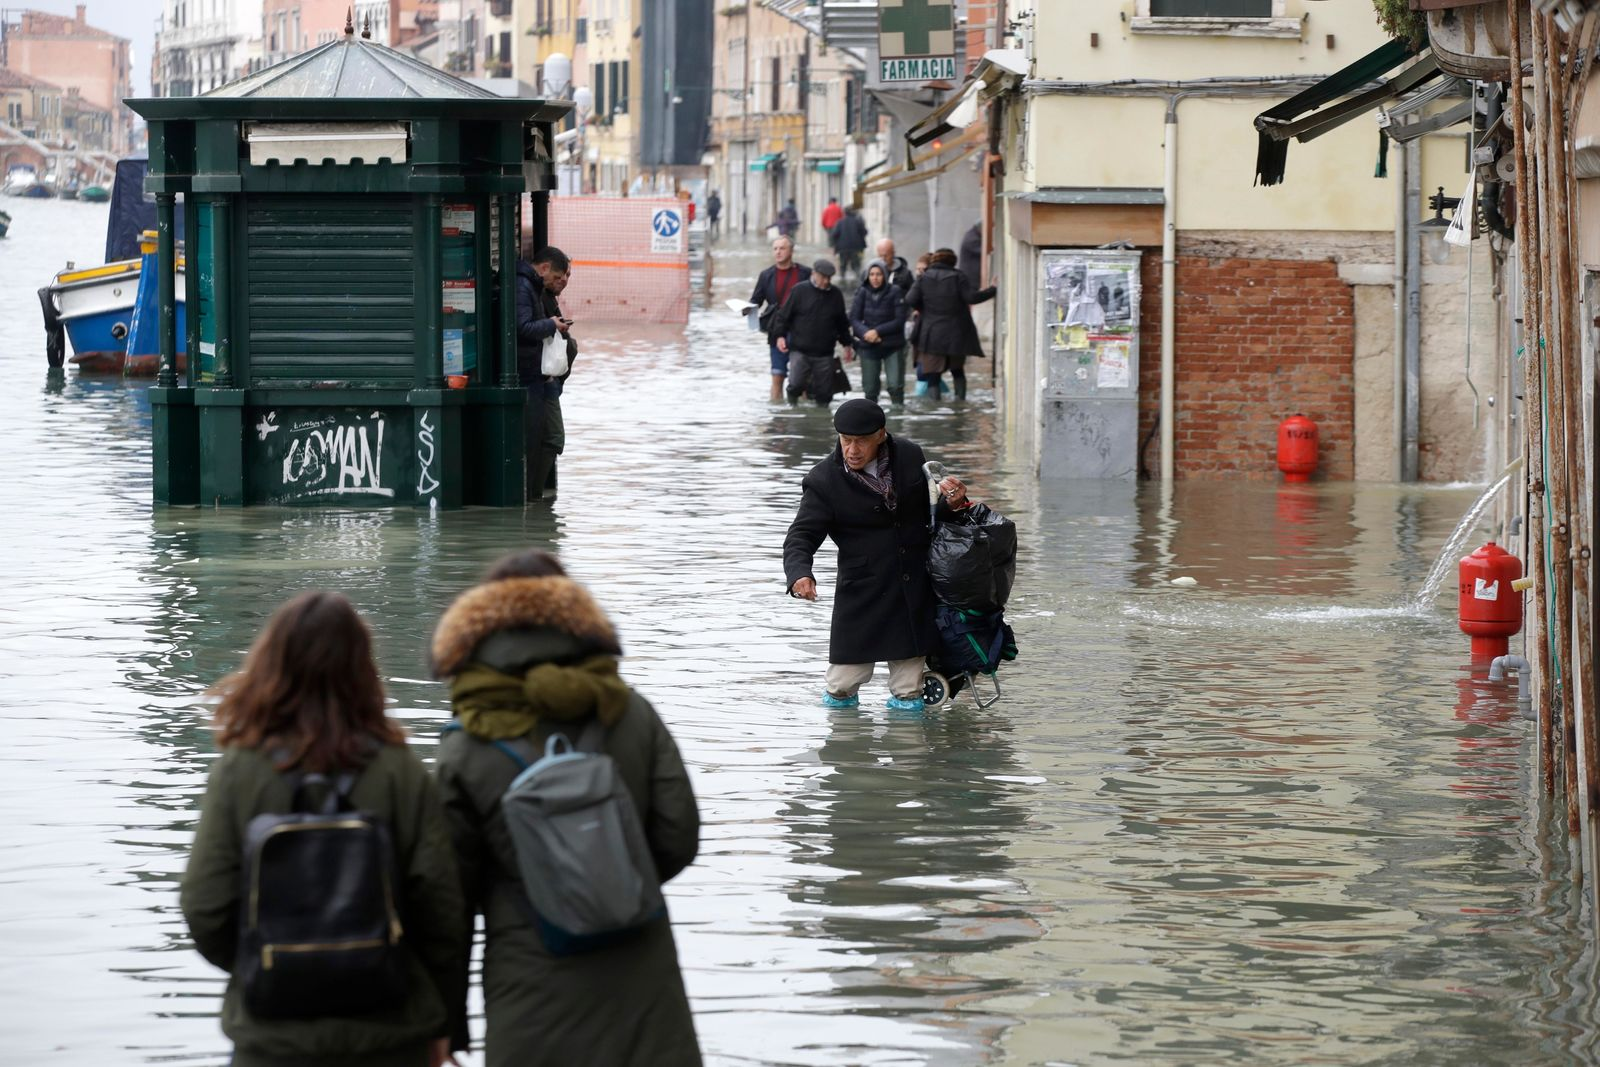 People wade through water during a high tide, in Venice, Wednesday, Nov. 13, 2019. (AP Photo/Luca Bruno)